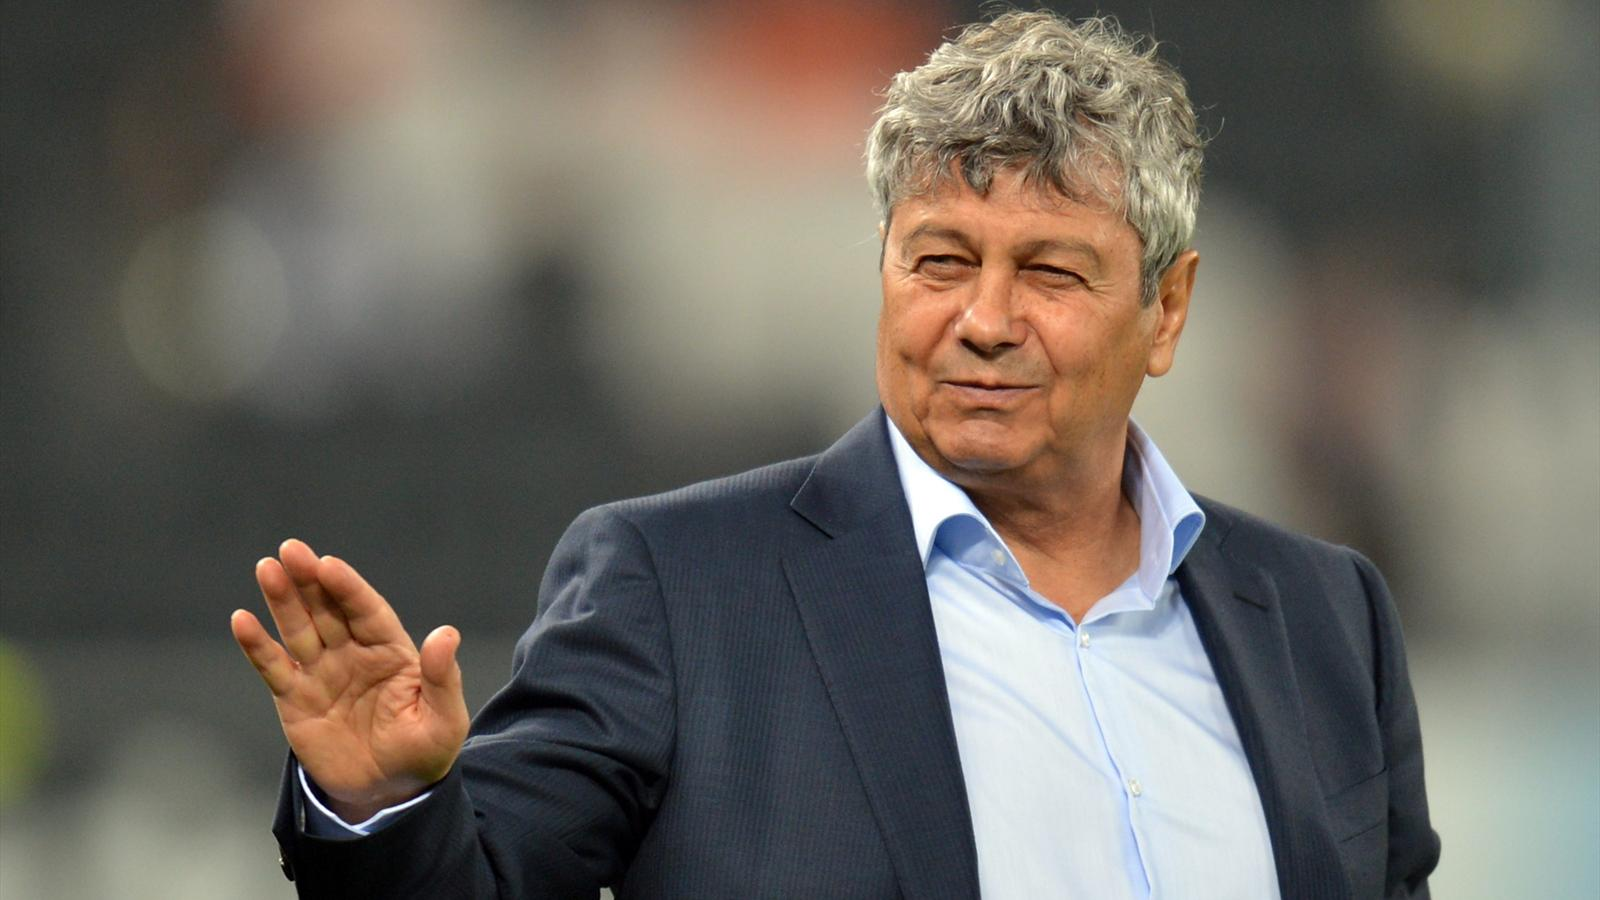 Mircea Lucescu earned a  million dollar salary, leaving the net worth at 13.5 million in 2017